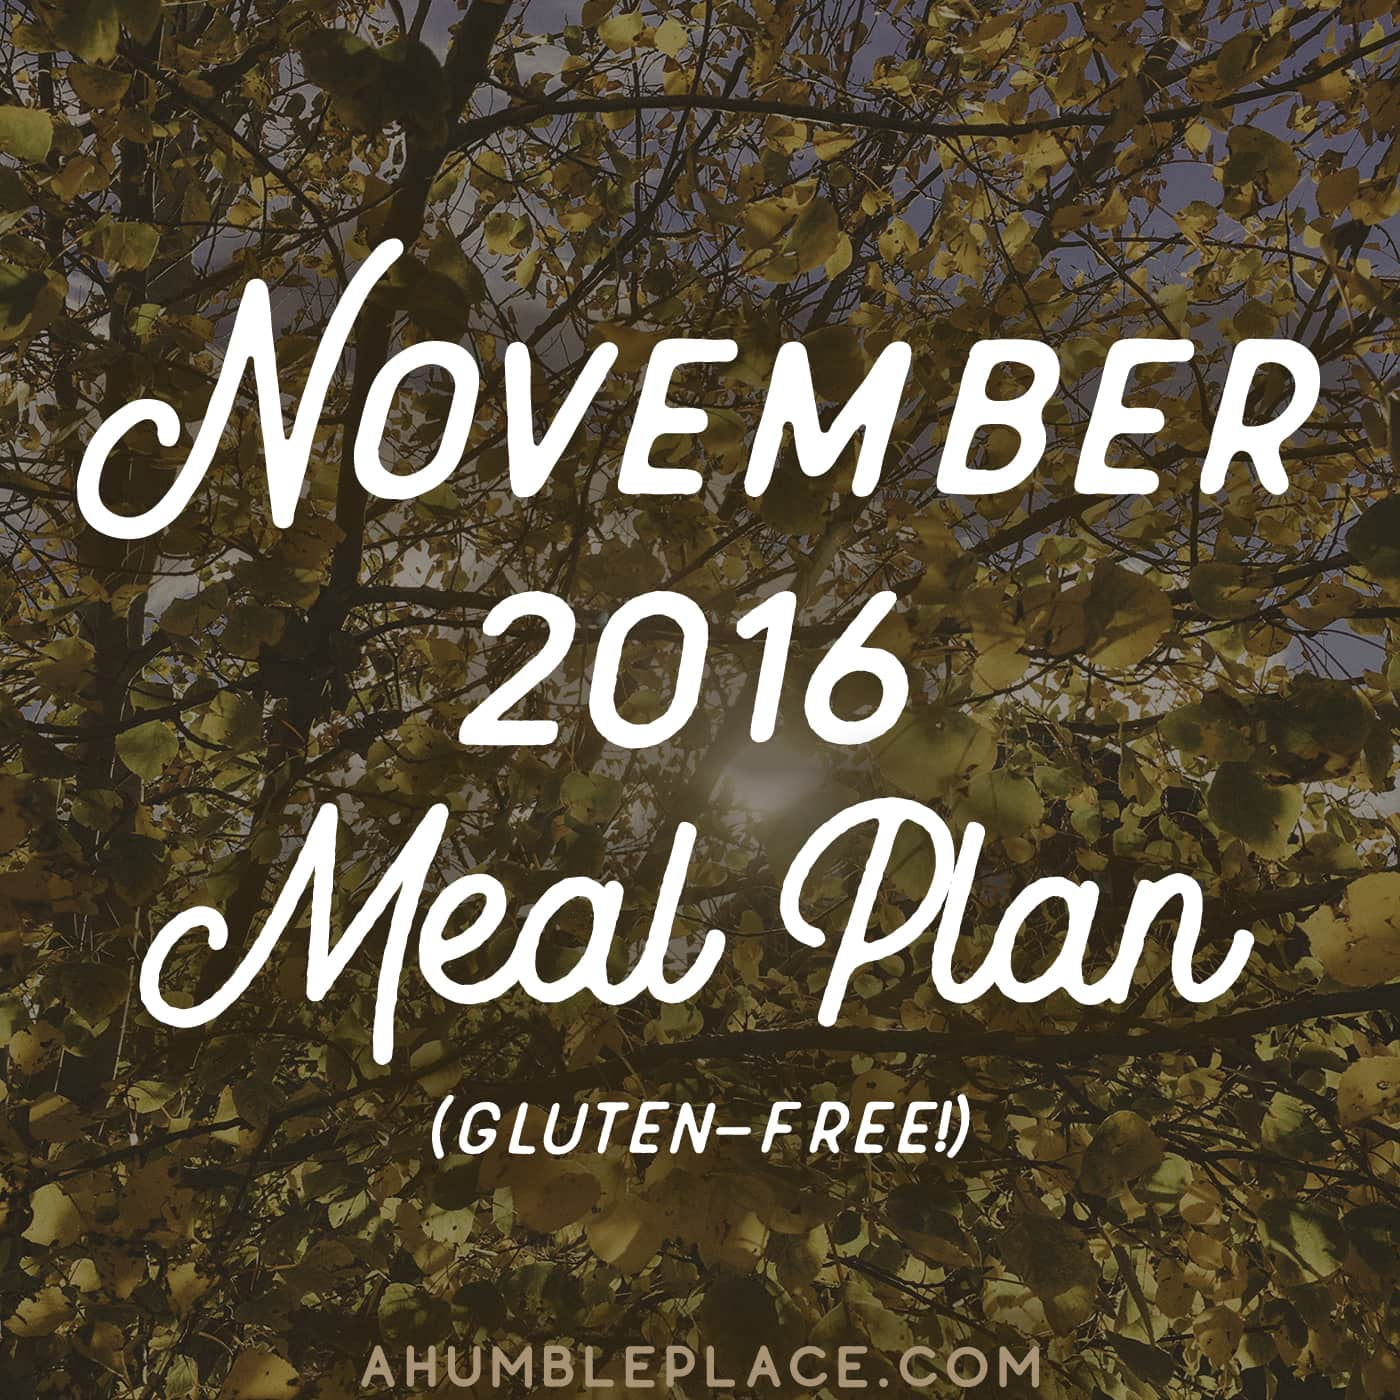 The November 2016 Monthly Meal Plan is here! This meal plan includes 5 to 6 gluten-free, grain-free, mostly dairy-free (or adaptable to dairy-free) meals for five weeks! It also includes Thanksgiving! - ahumbleplace.com